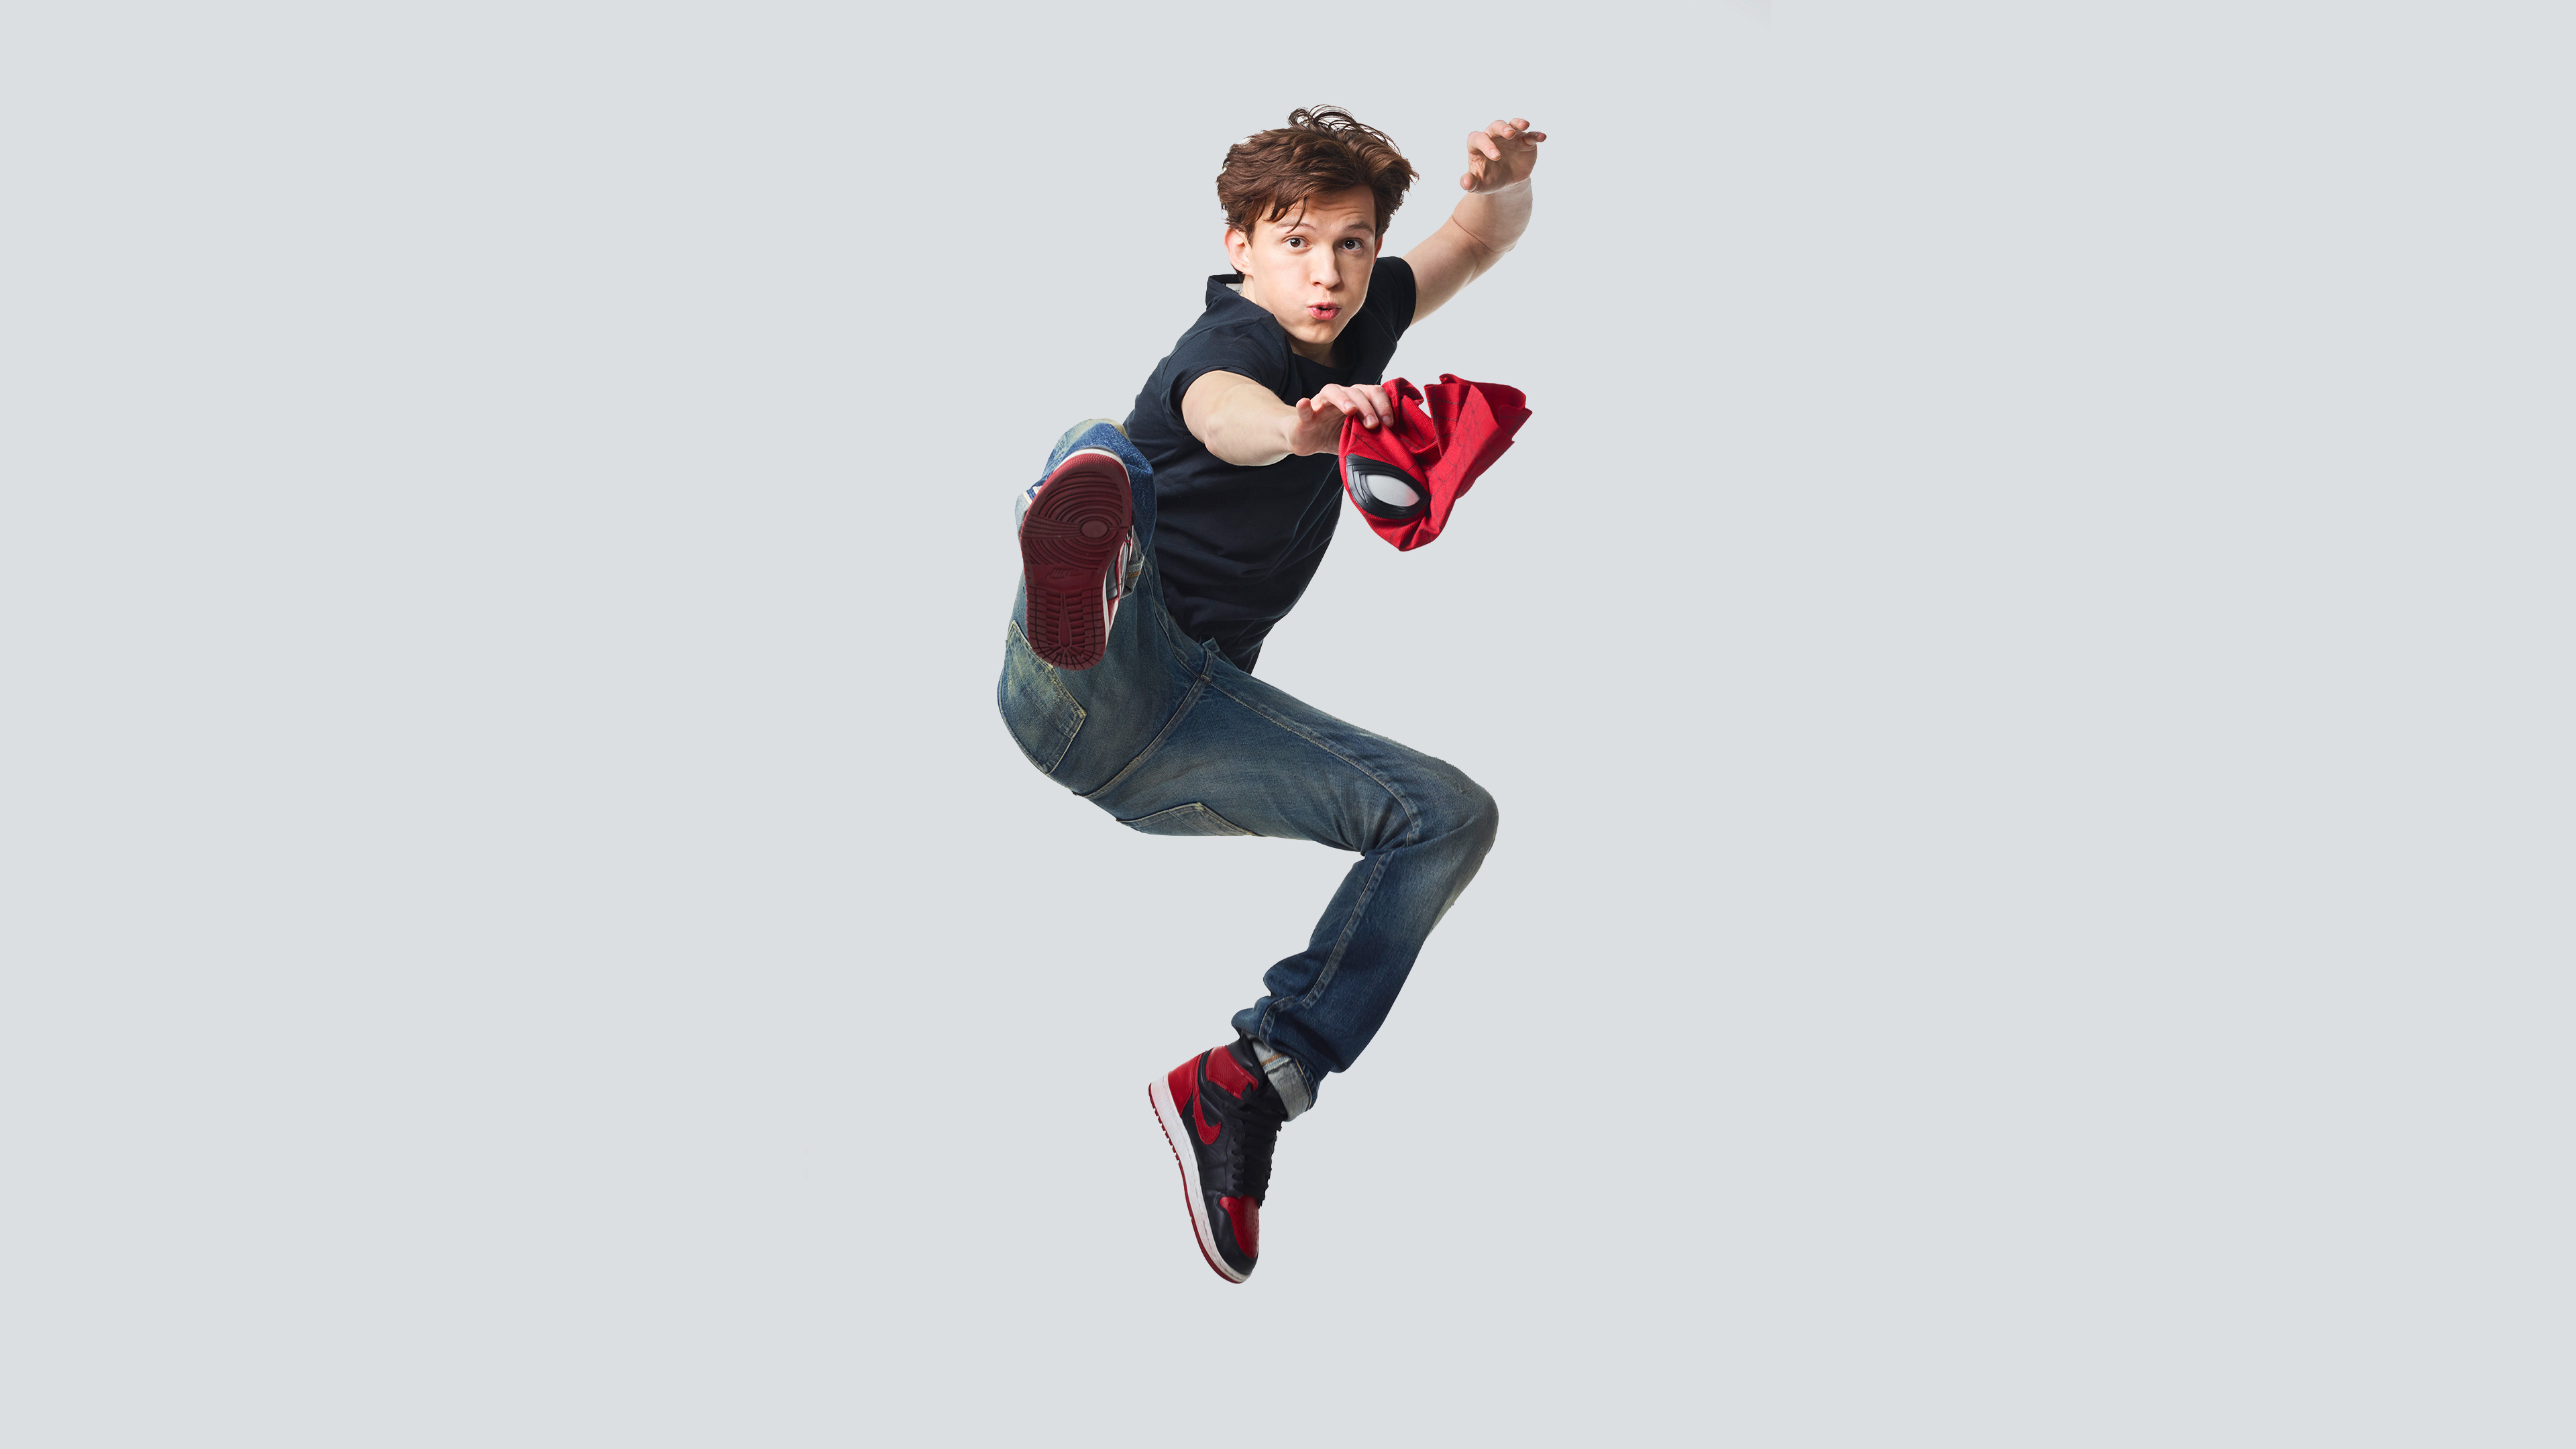 Planes Wall Stickers Tom Holland Spiderman Hd Movies 4k Wallpapers Images